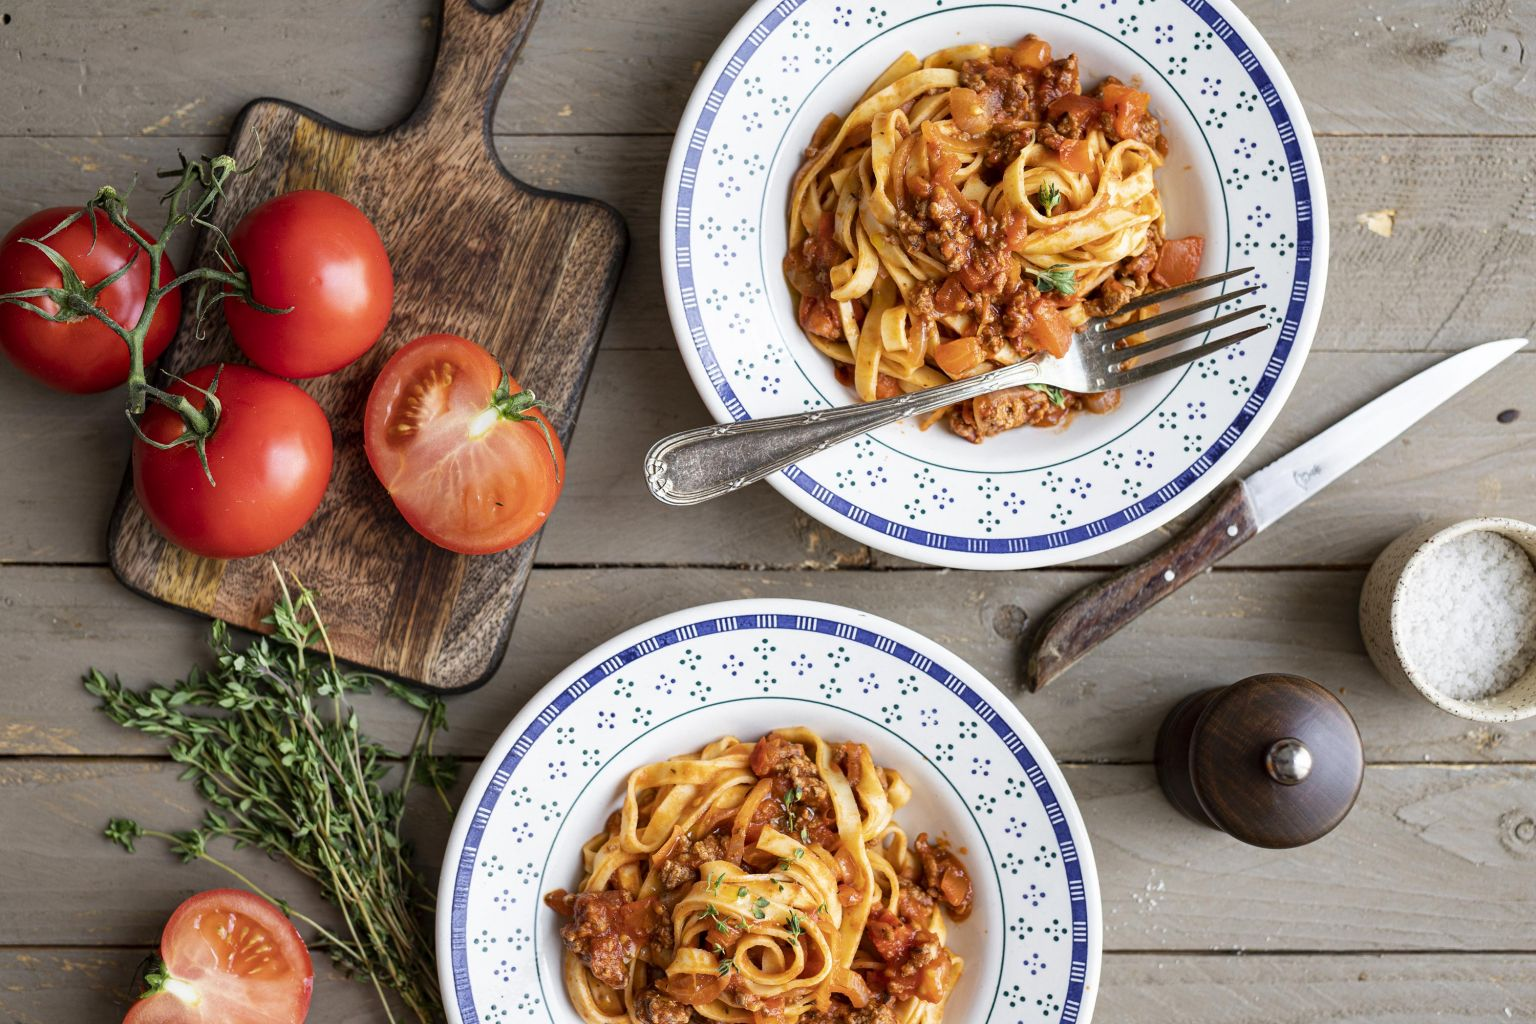 Tagliatelle fraîches façon bolognaise